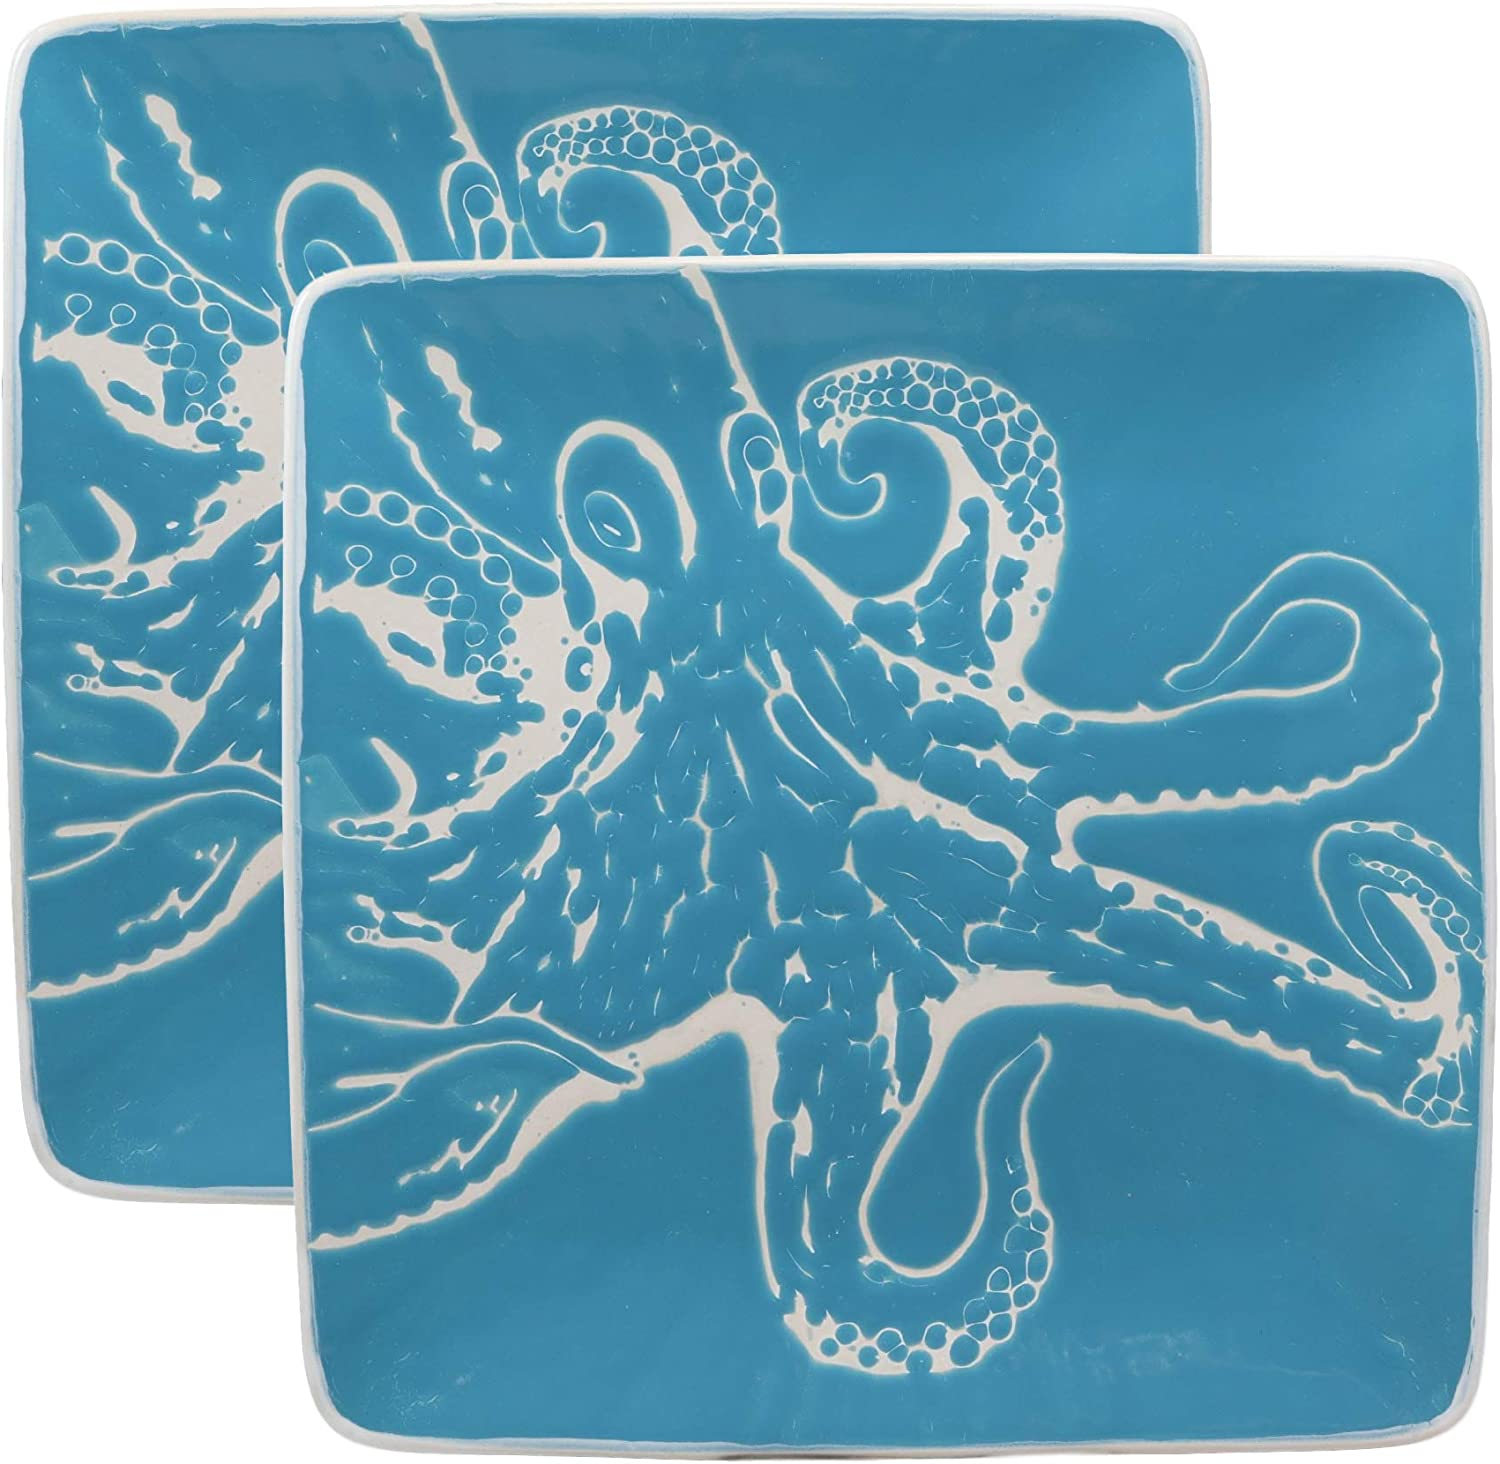 Ebros Nautical Coastal Ocean Sea Marine Giant Octopus Abstract Art Soothing Blue Large Dinner Plate Set of 2 Square 10.75